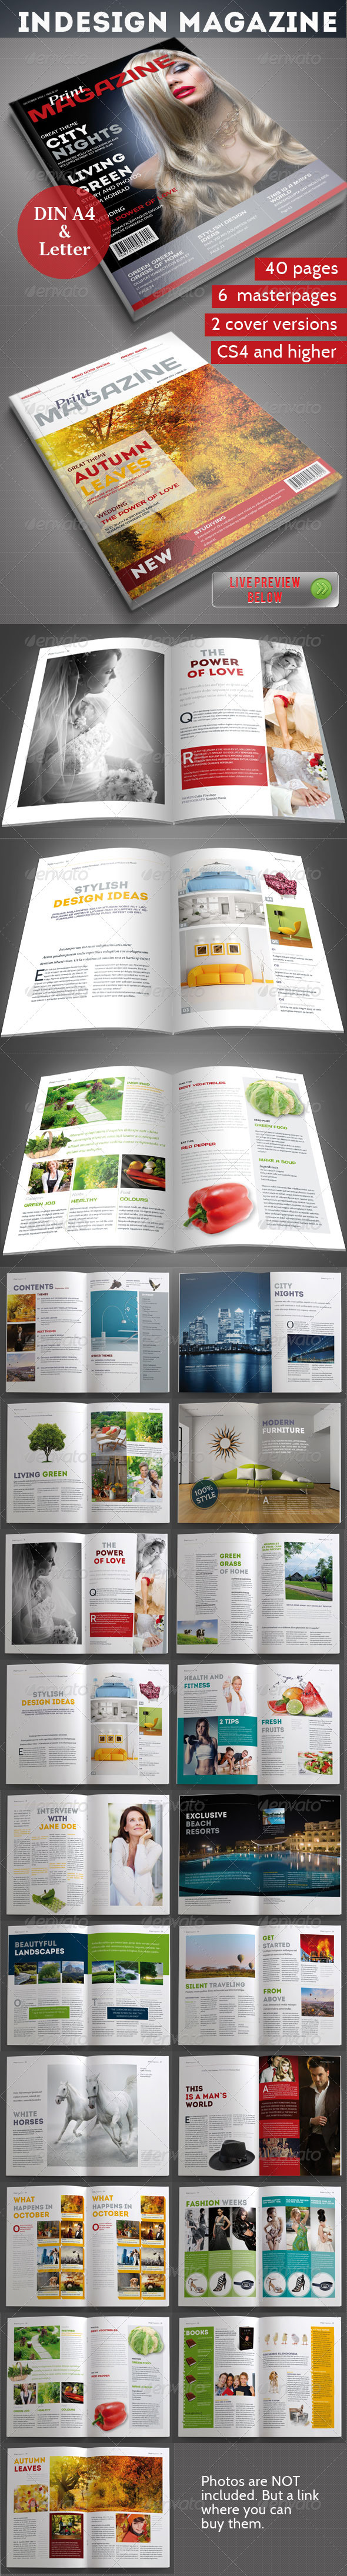 InDesign Magazine Template 40 pages - Magazines Print Templates